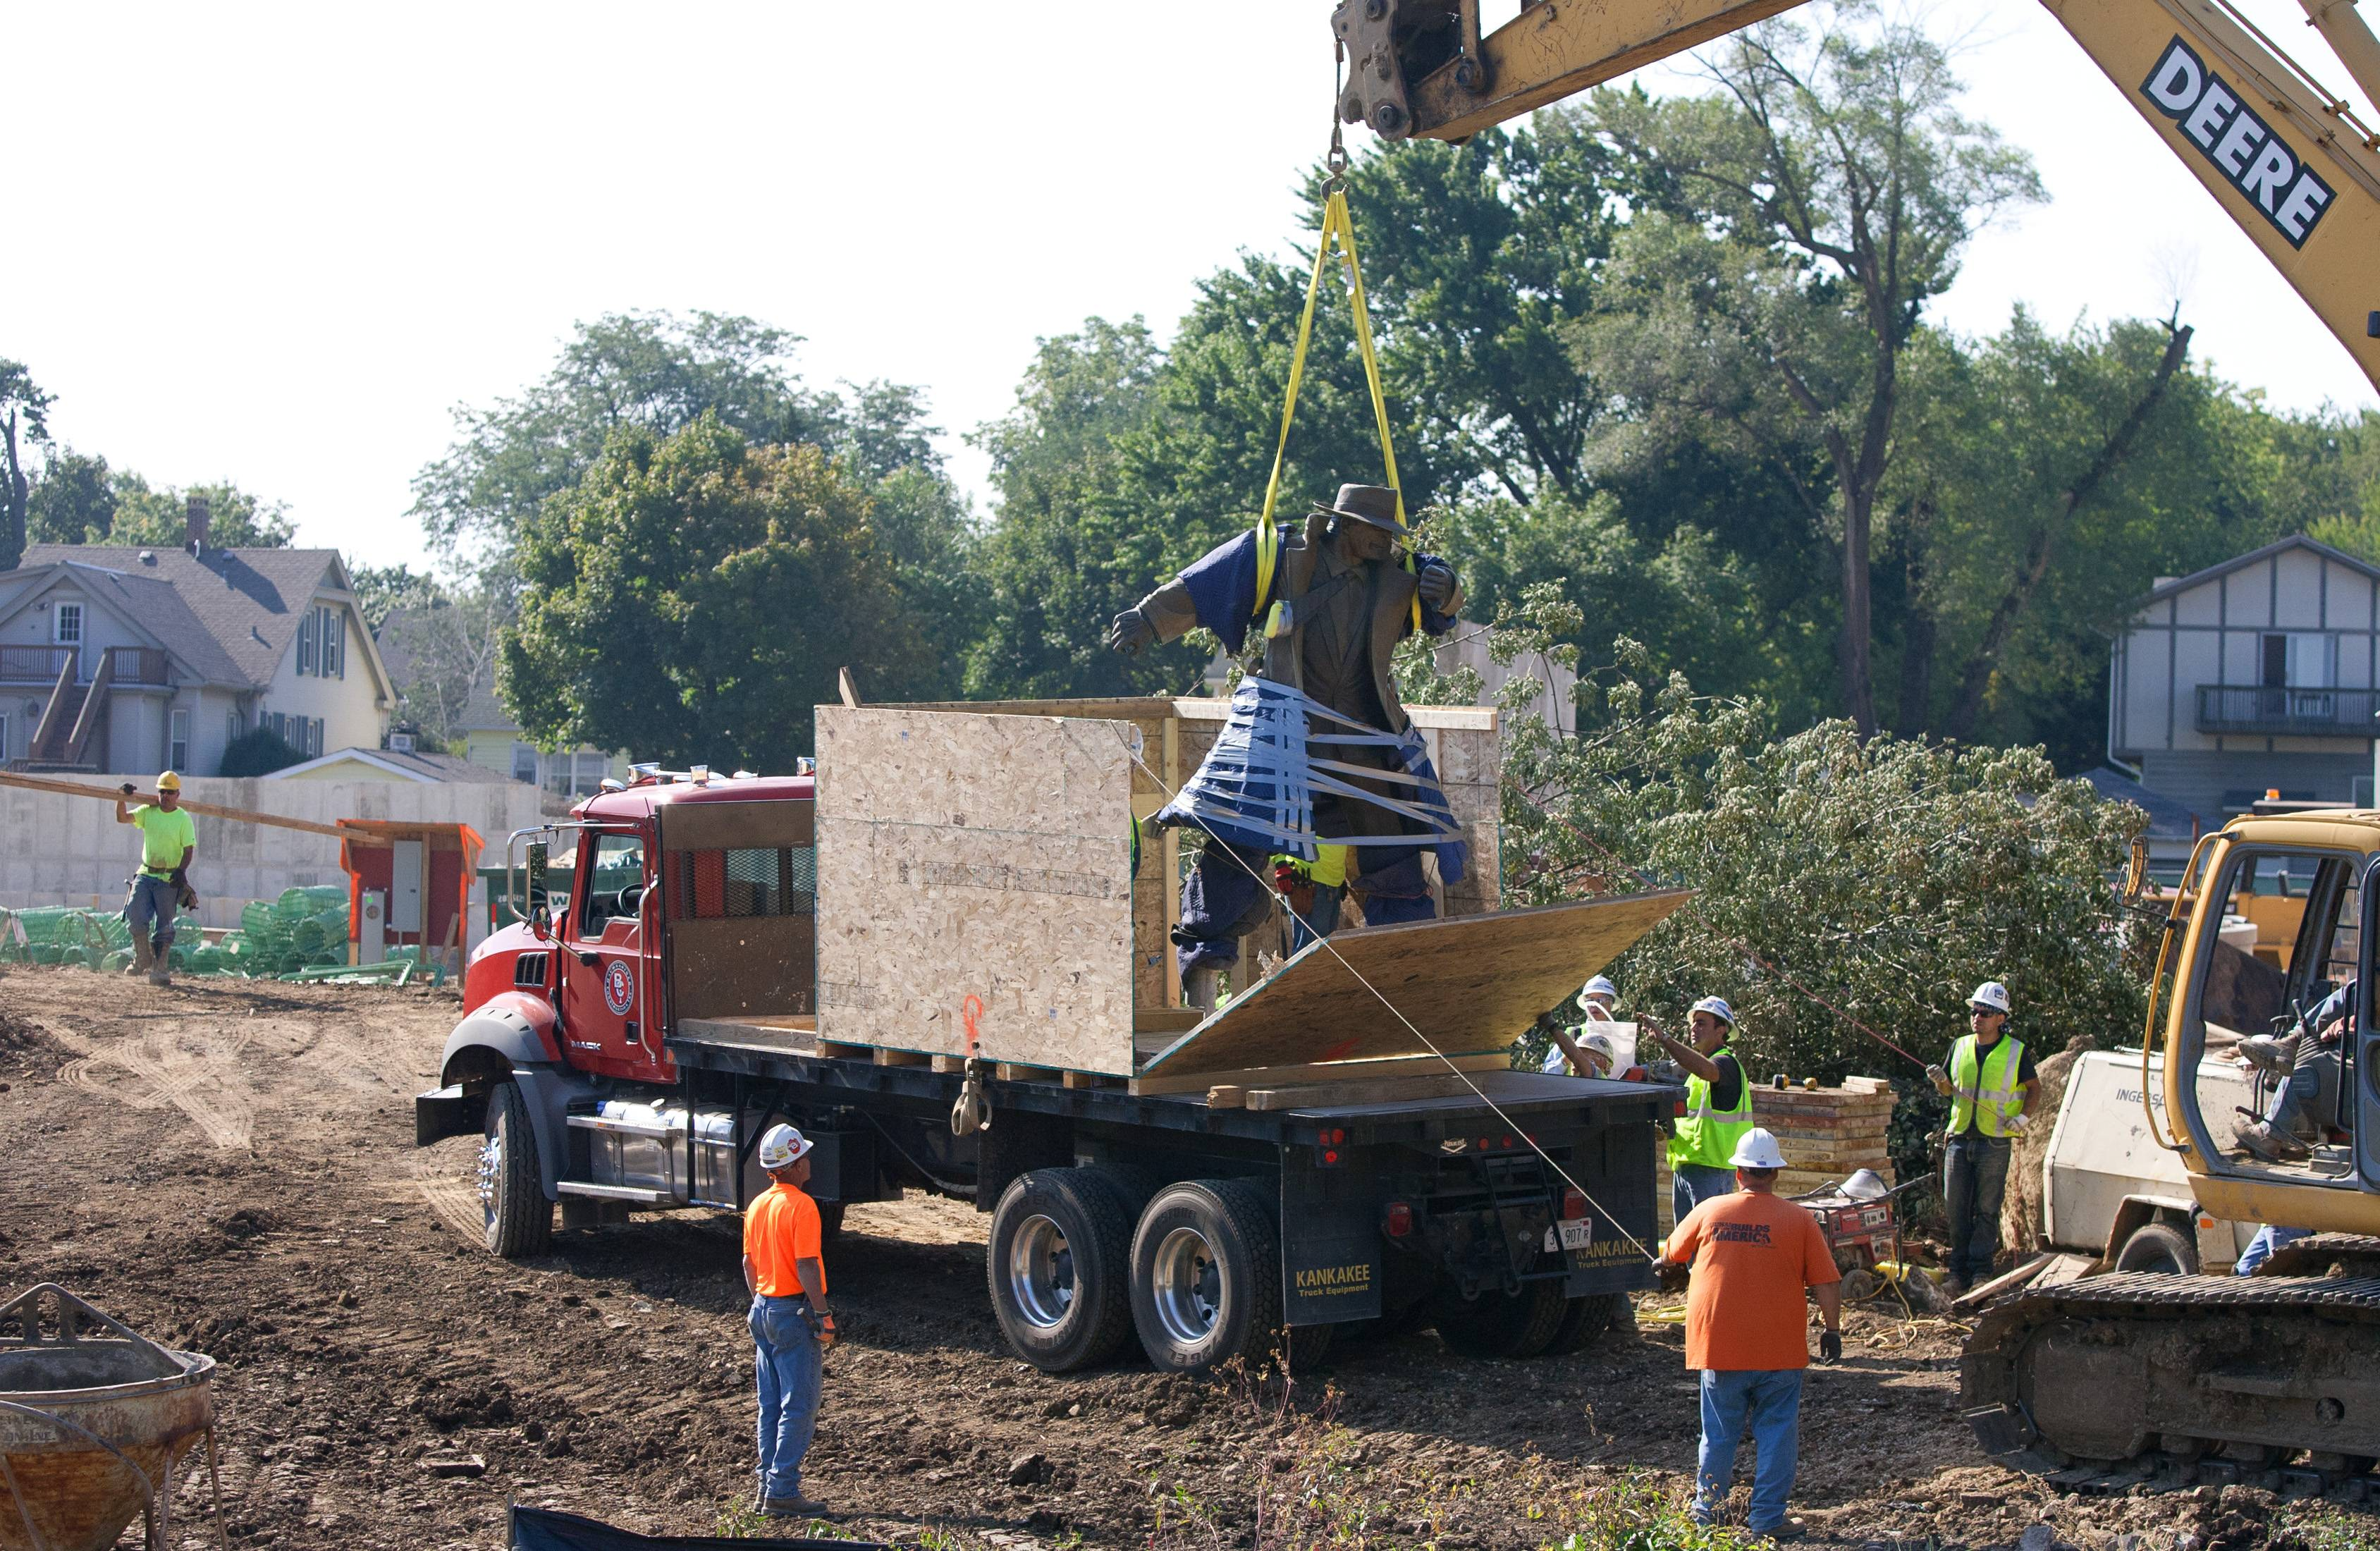 It took a crane to lift the sculpture of cartoon detective Dick Tracy from its base along the Naperville Riverwalk on Thursday. The sculpture is expected to be in storage for about 60 days while a new plaza is built to house it at the Water Street District.